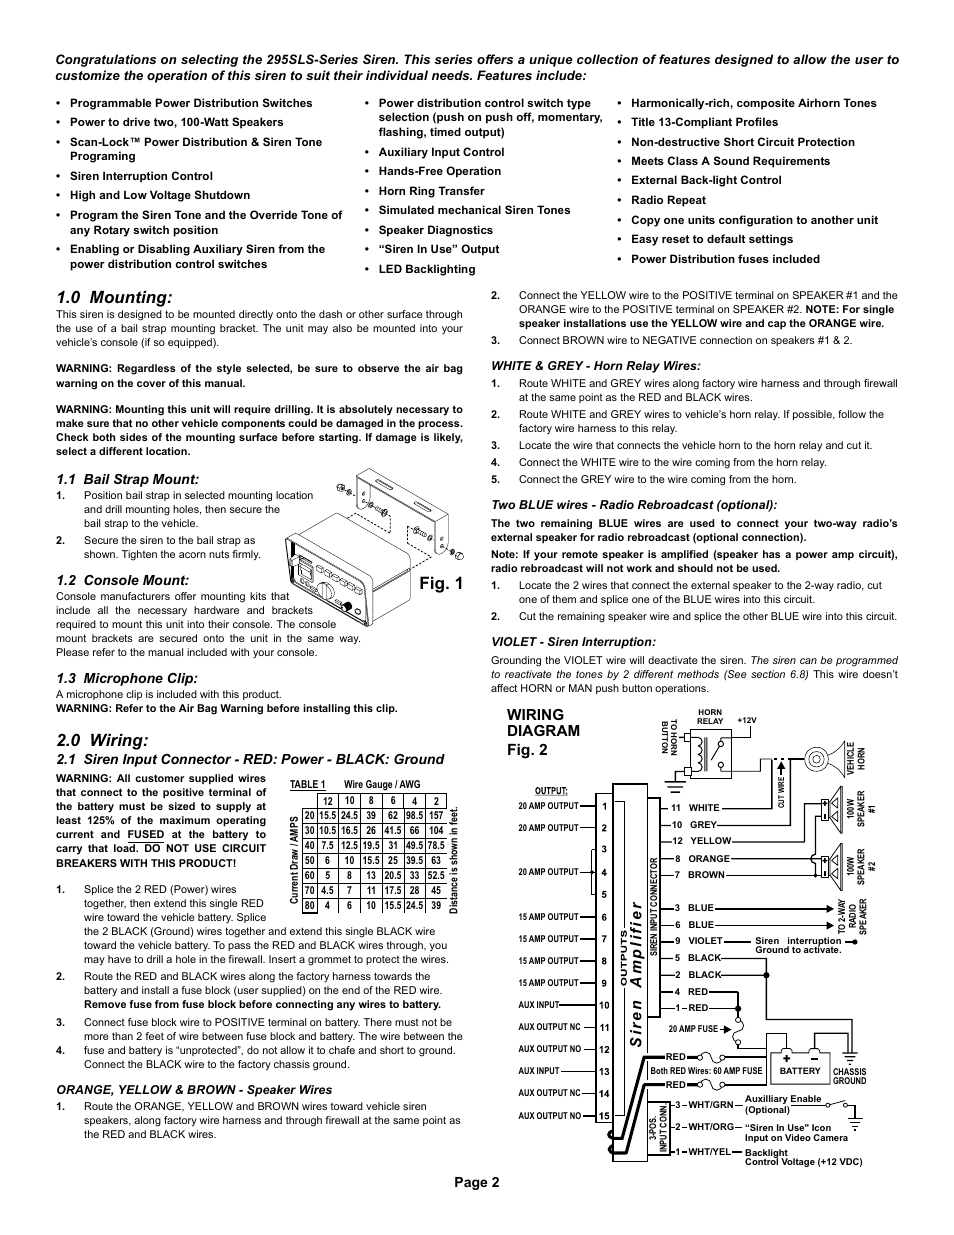 Fig. 1 1.0 mounting, 0 wiring, Wiring diagram | Whelen 295SLSA6 User Manual  | Page 2 / 6 | Original modeManuals Directory